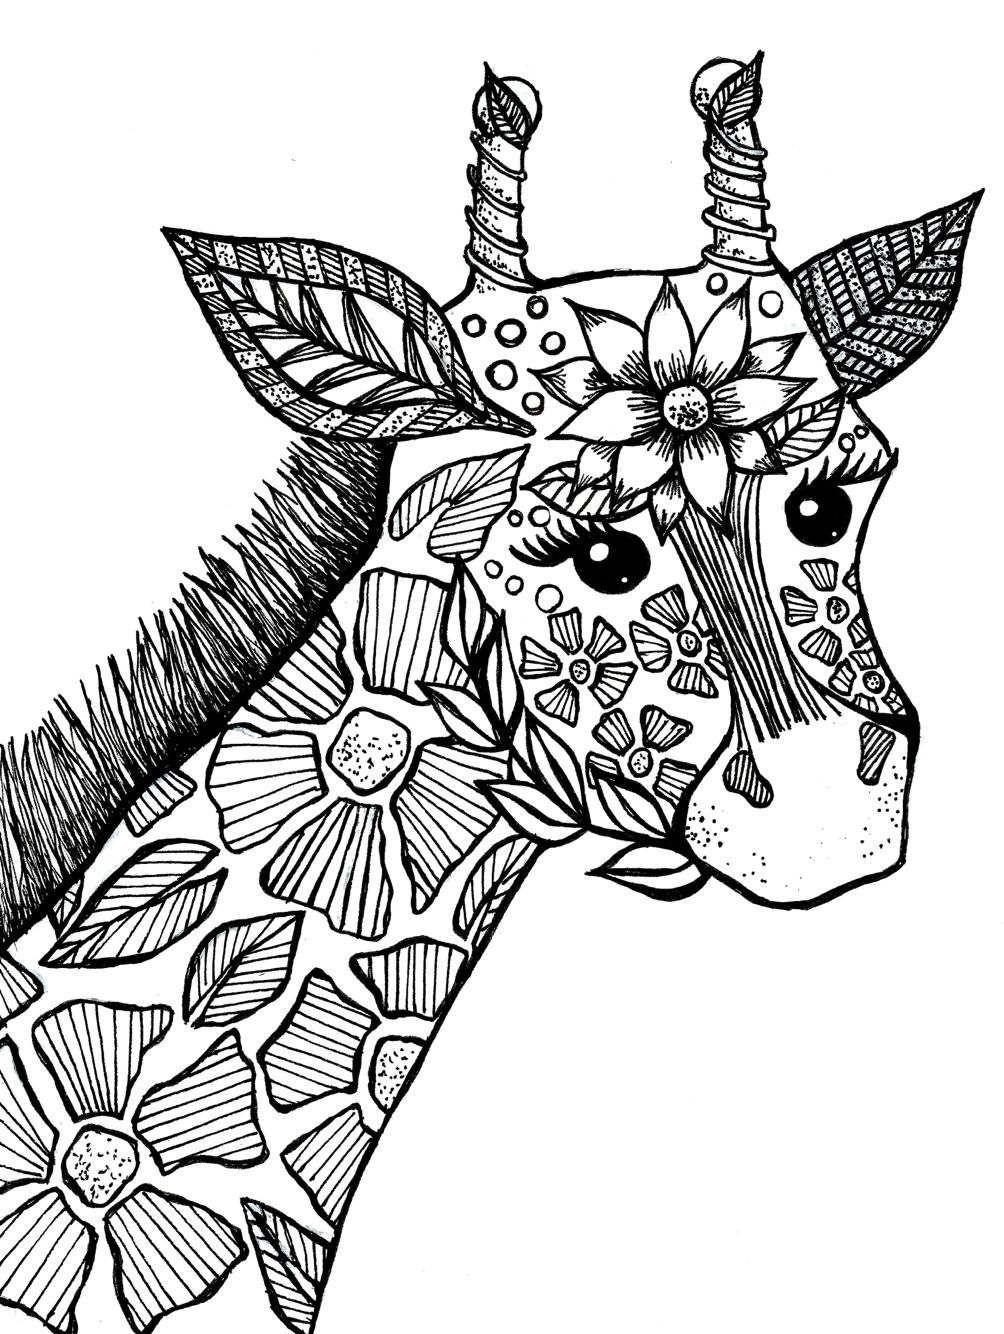 Adults colouring book pages - Giraffe Adult Coloring Book Page